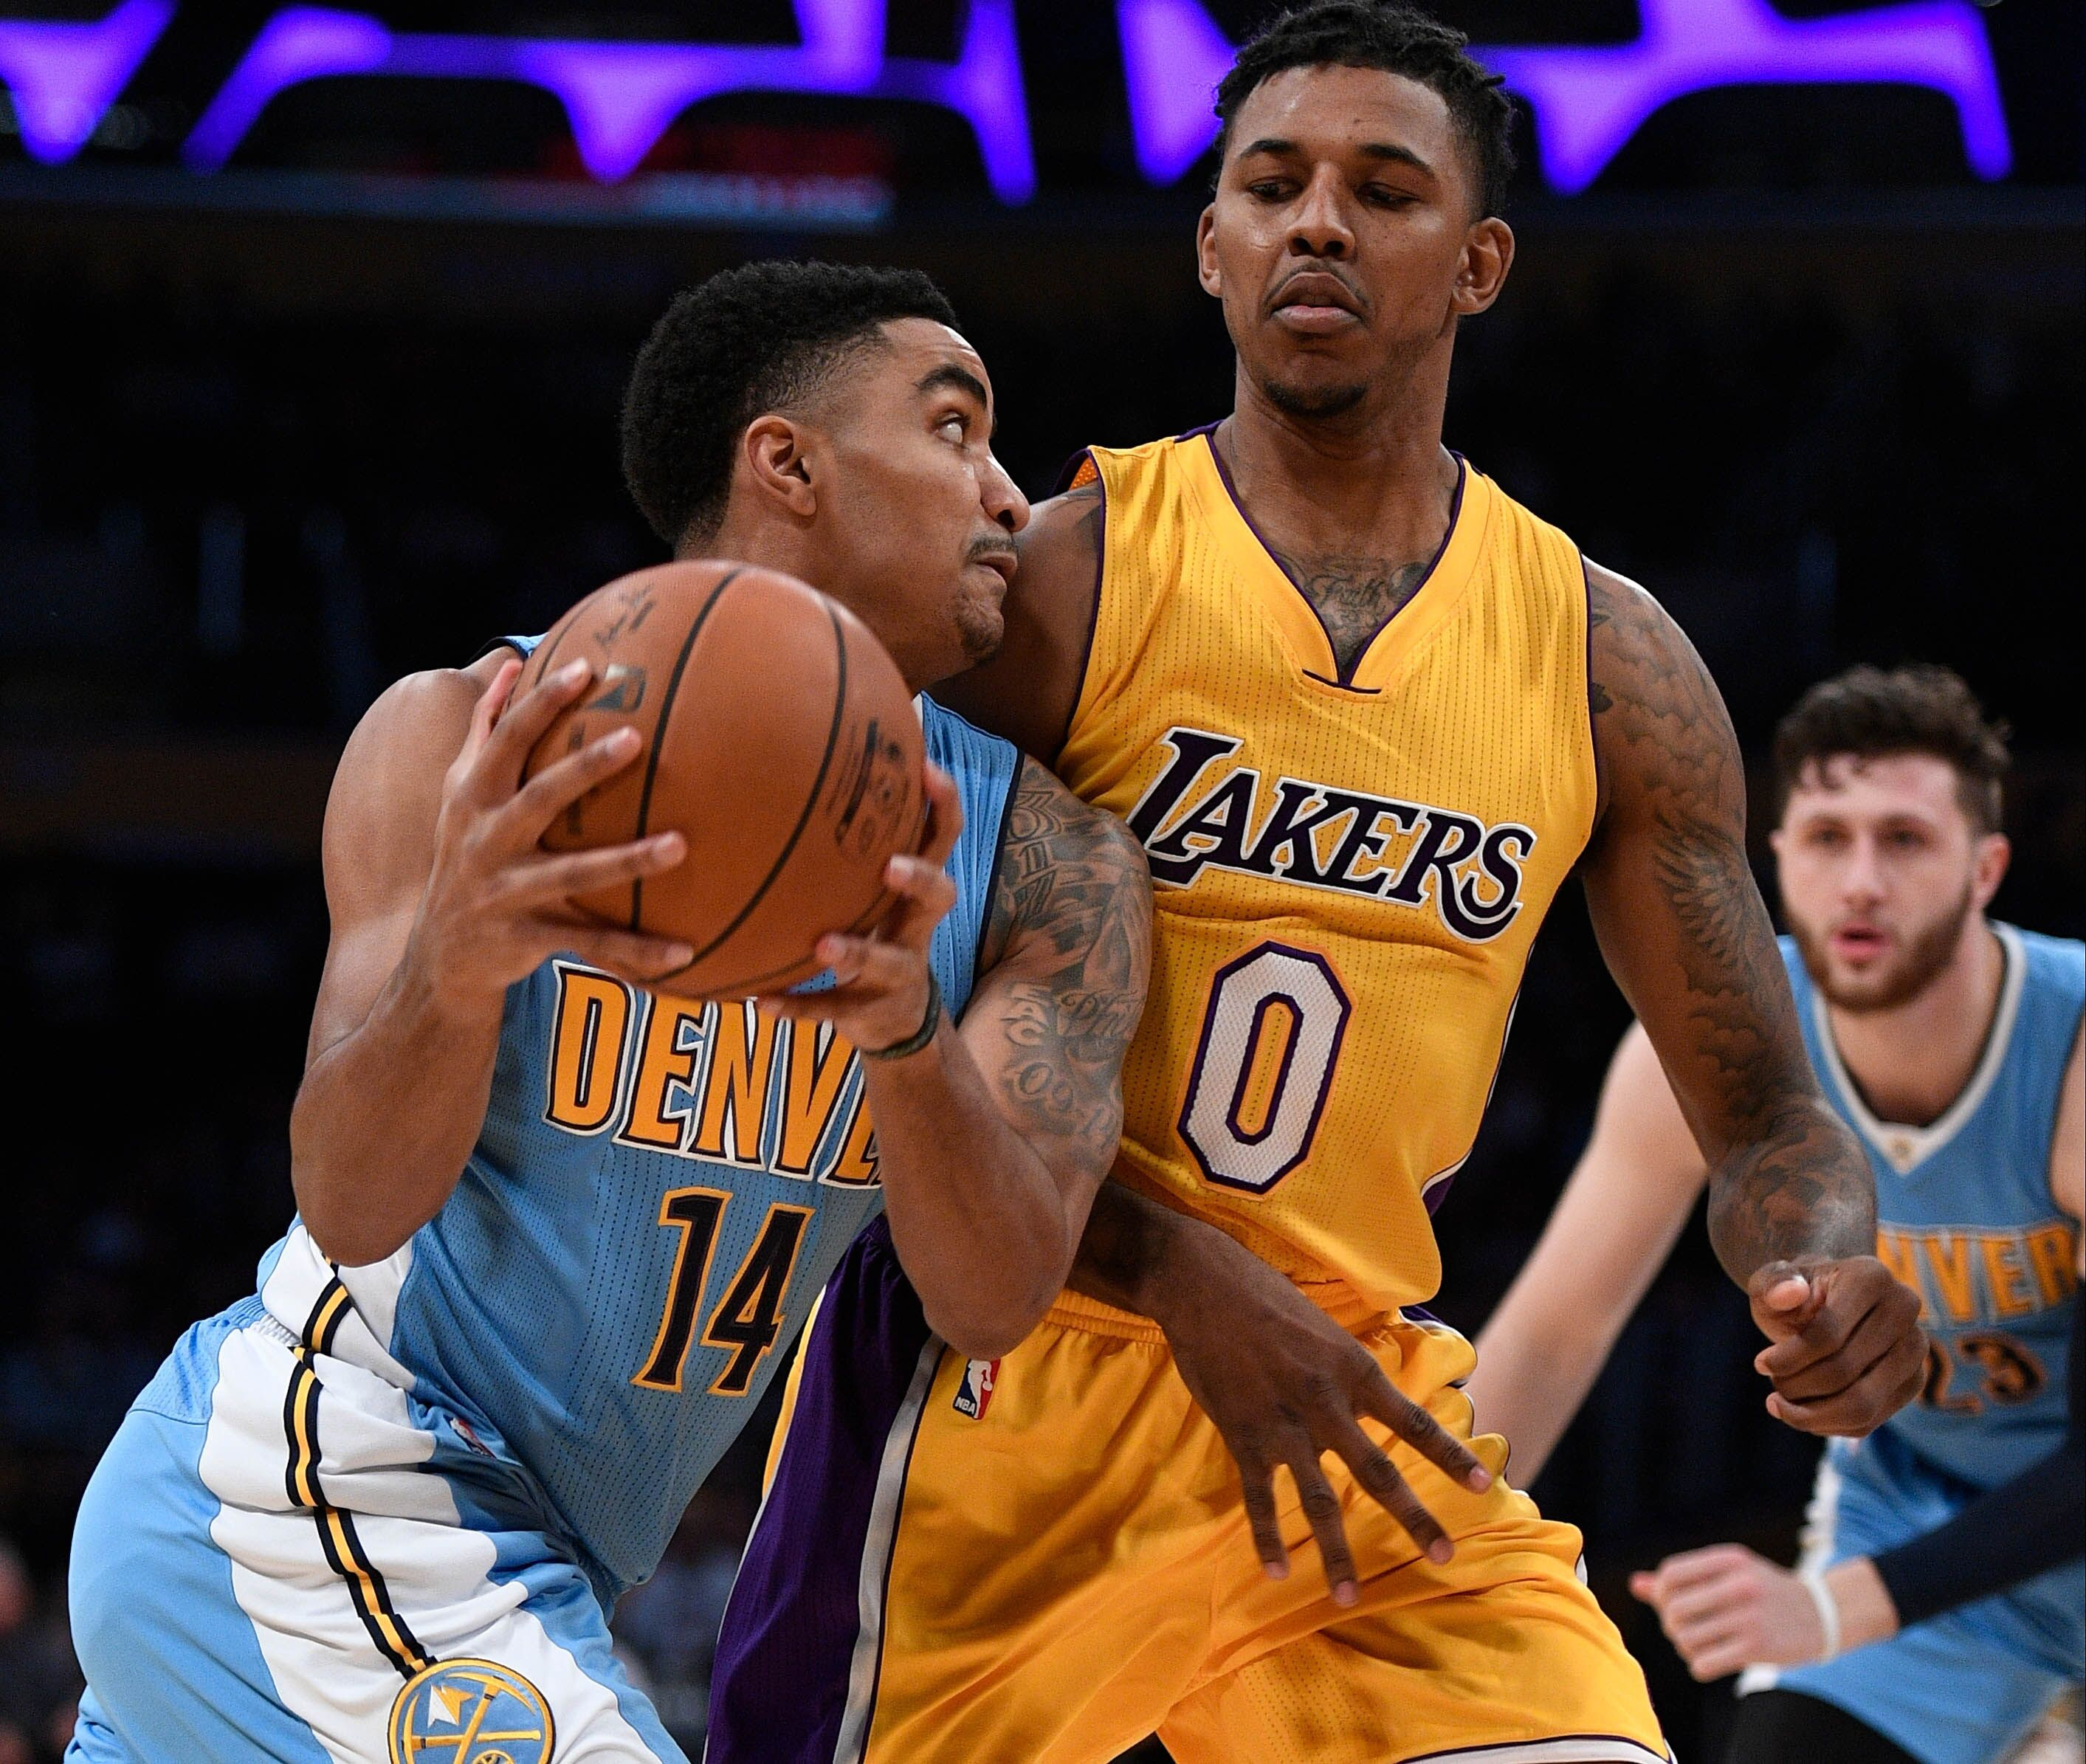 Nuggets X Clippers: Lakers Hang On To Beat The Denver Nuggets